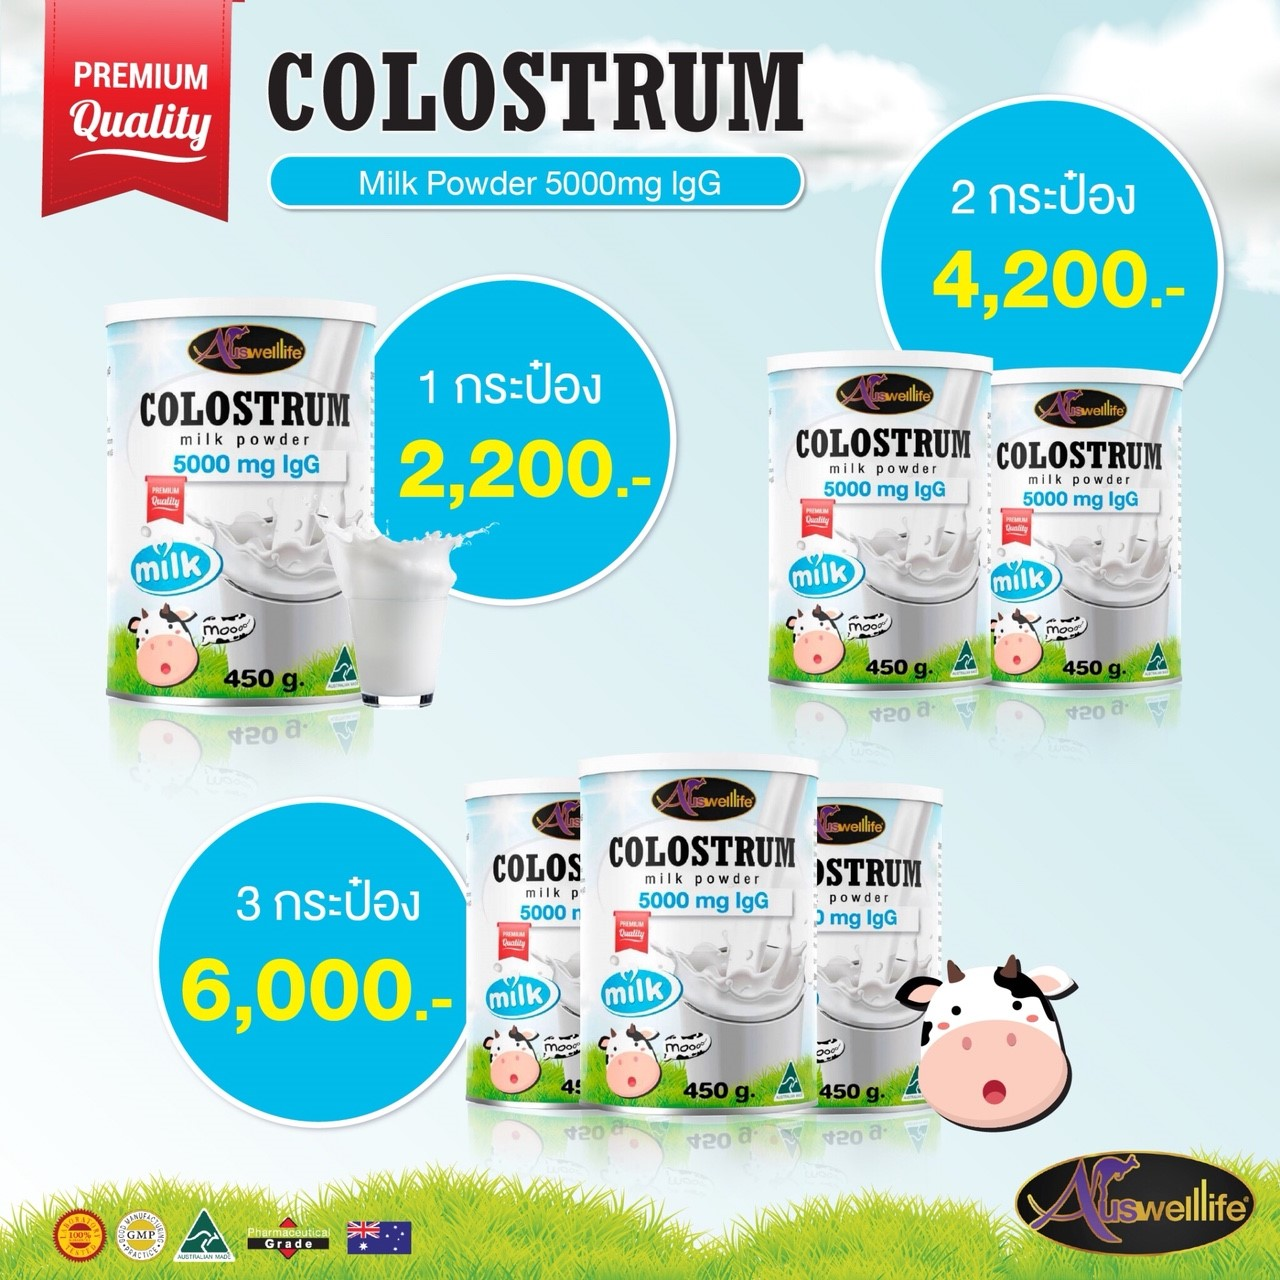 auswelllife colostrum milk powder 5000mg